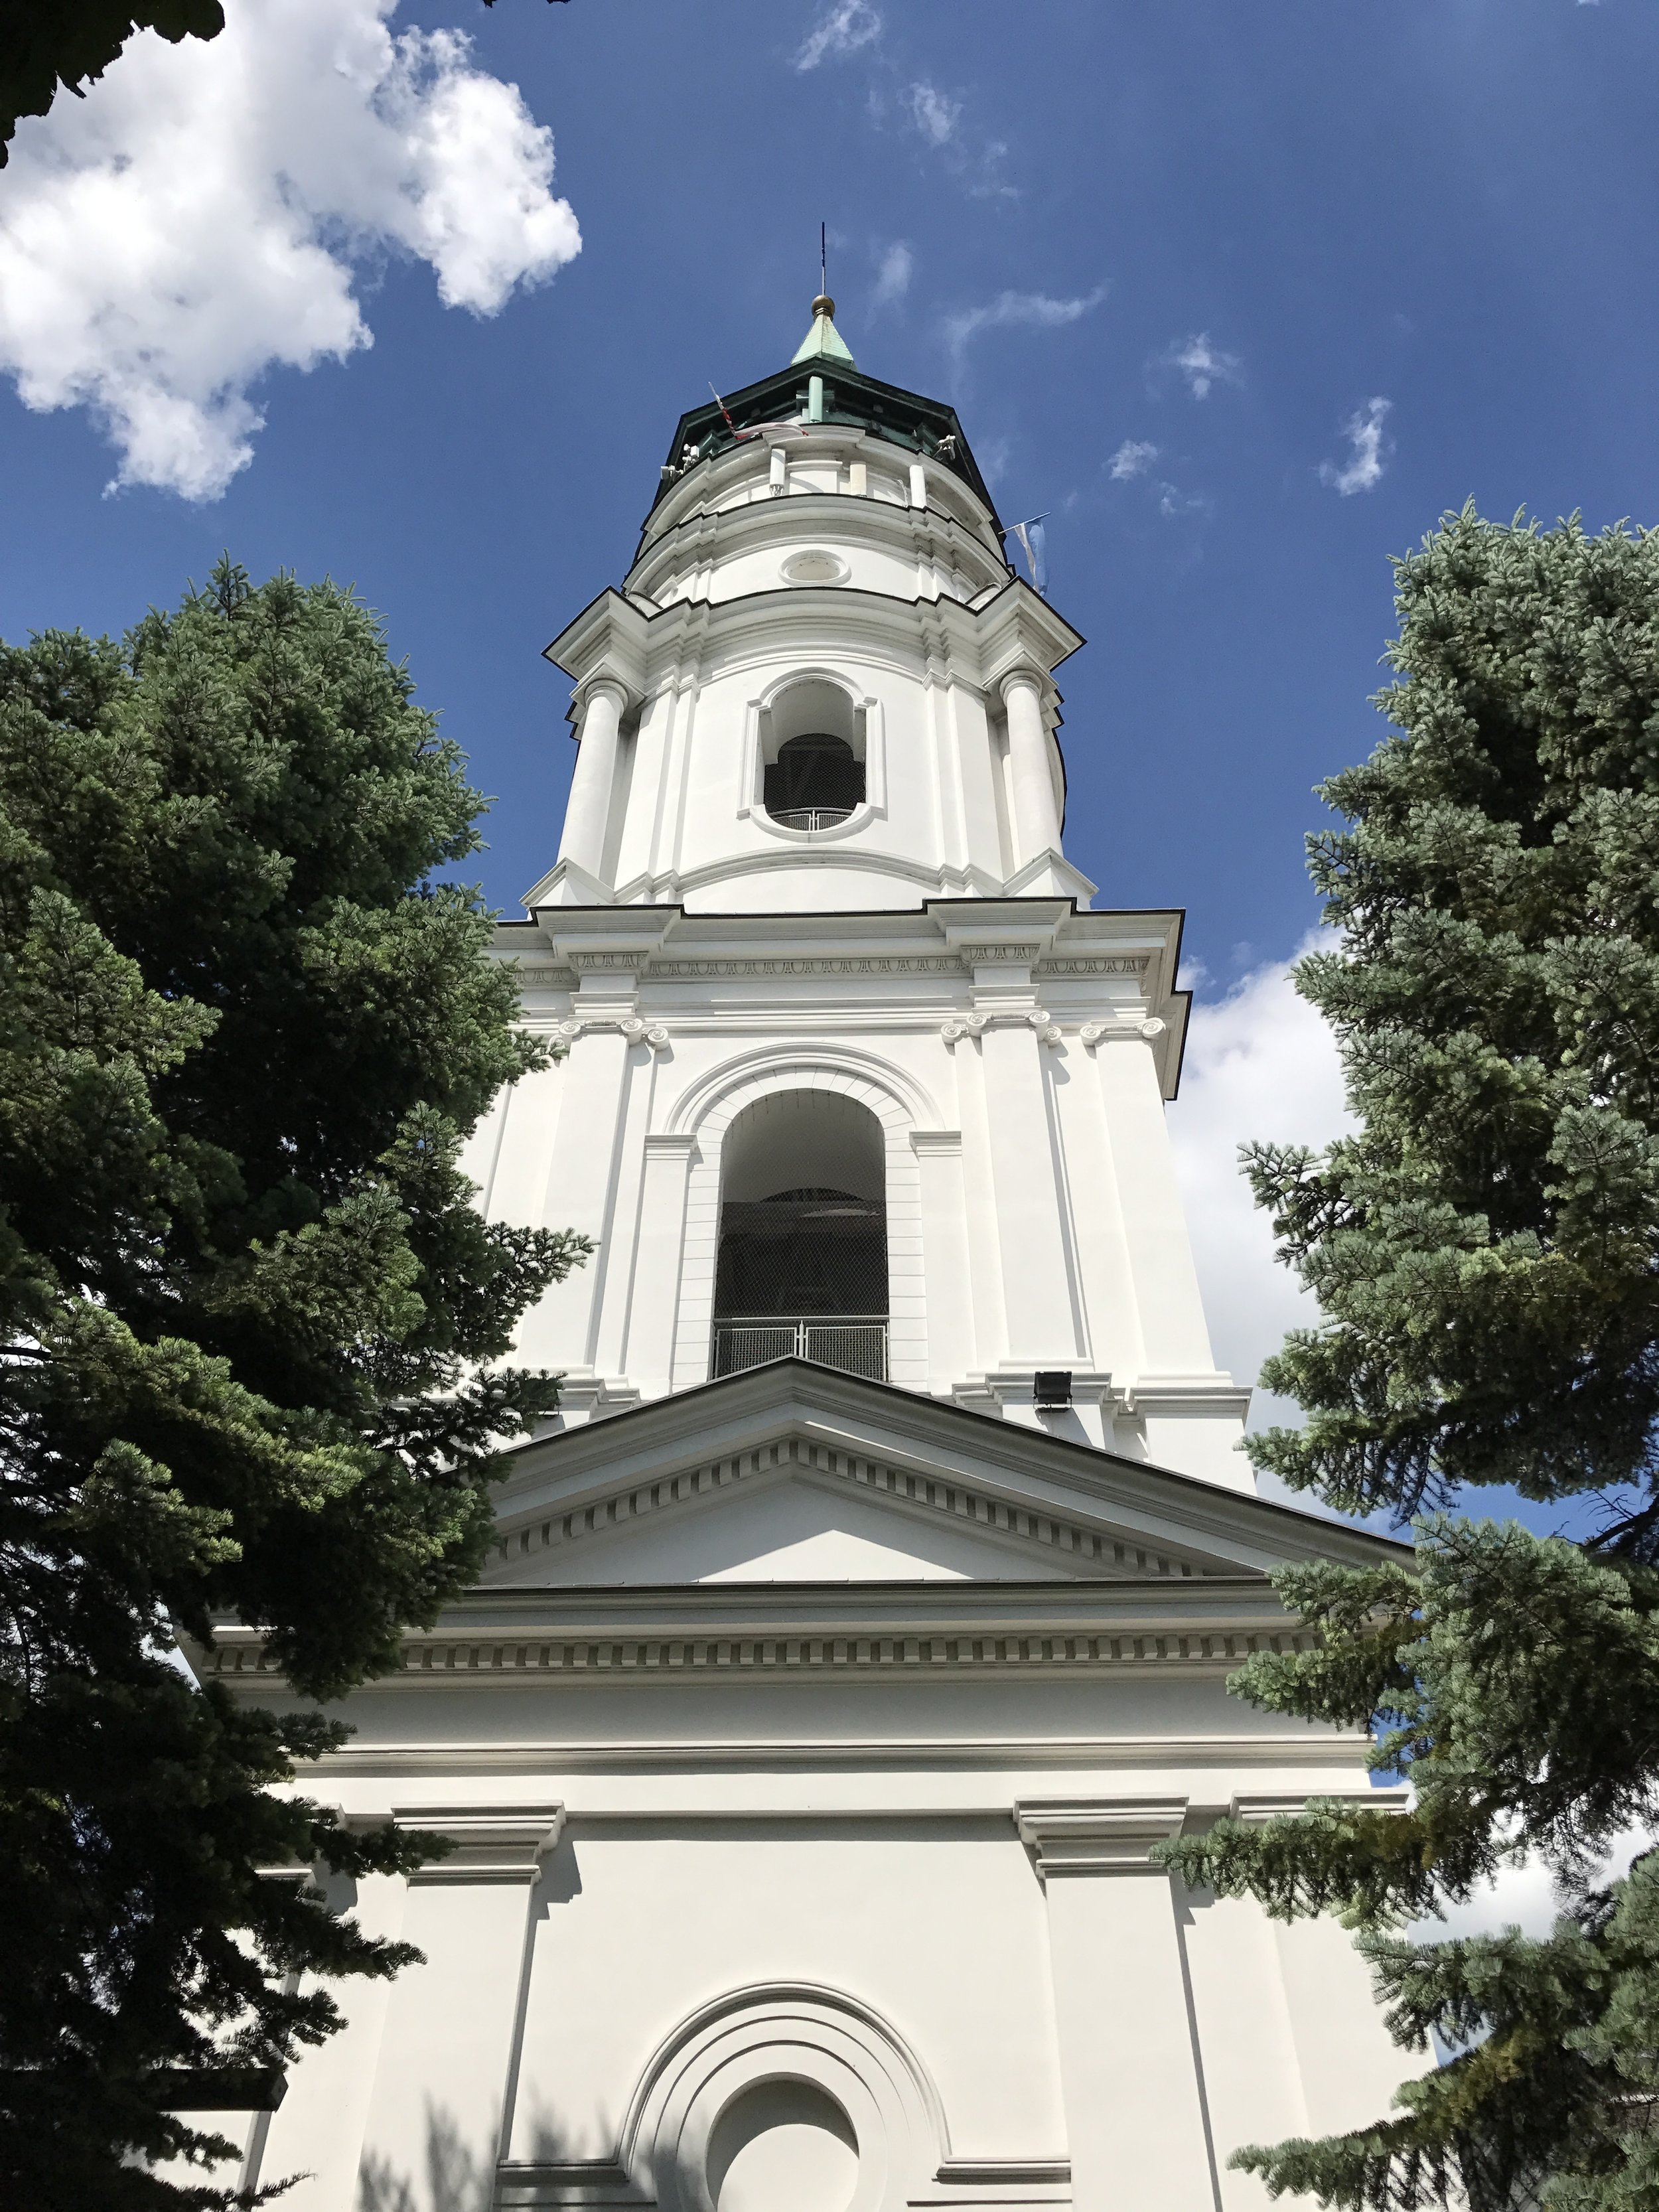 Belfry Tower in Cathedral Complex in Chelm, Poland